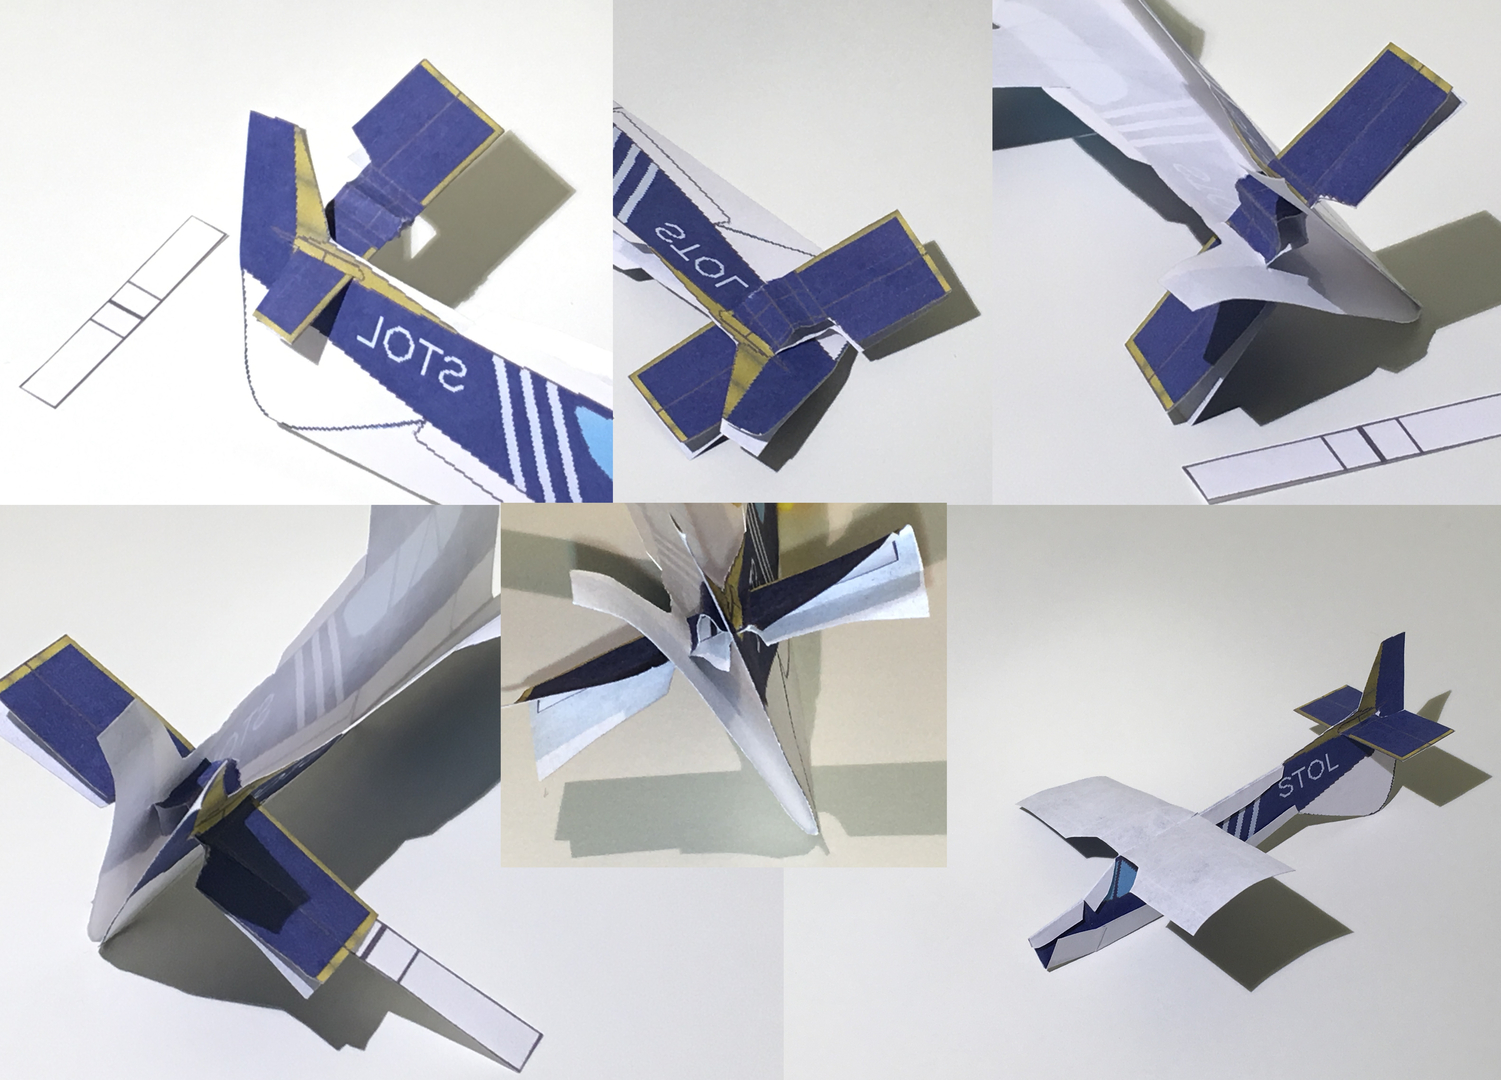 4D paper airplane - Paper Airplane Template, STOL Aircraft